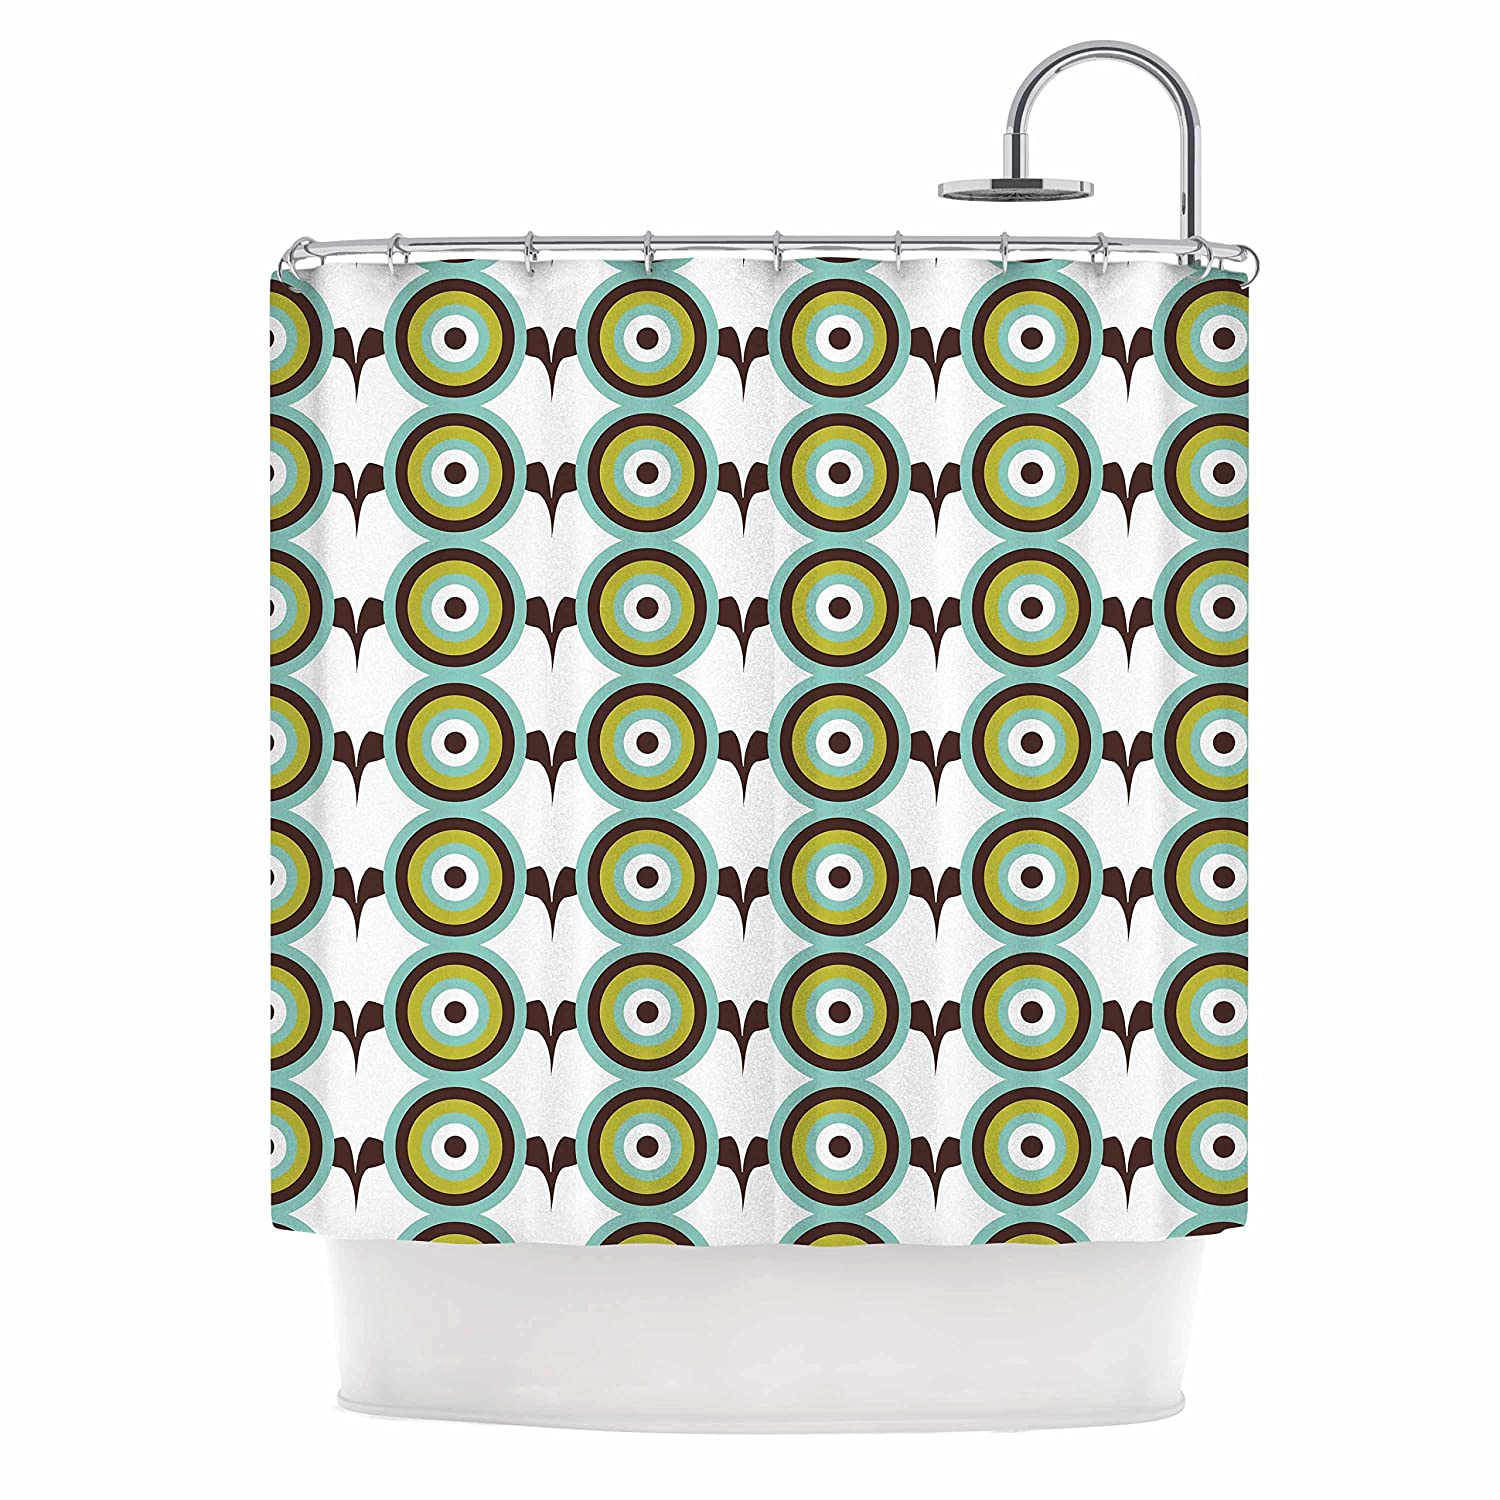 Kess InHouse afe Images Retro Circles Green Brown Illustration 69 x 70 Shower Curtain